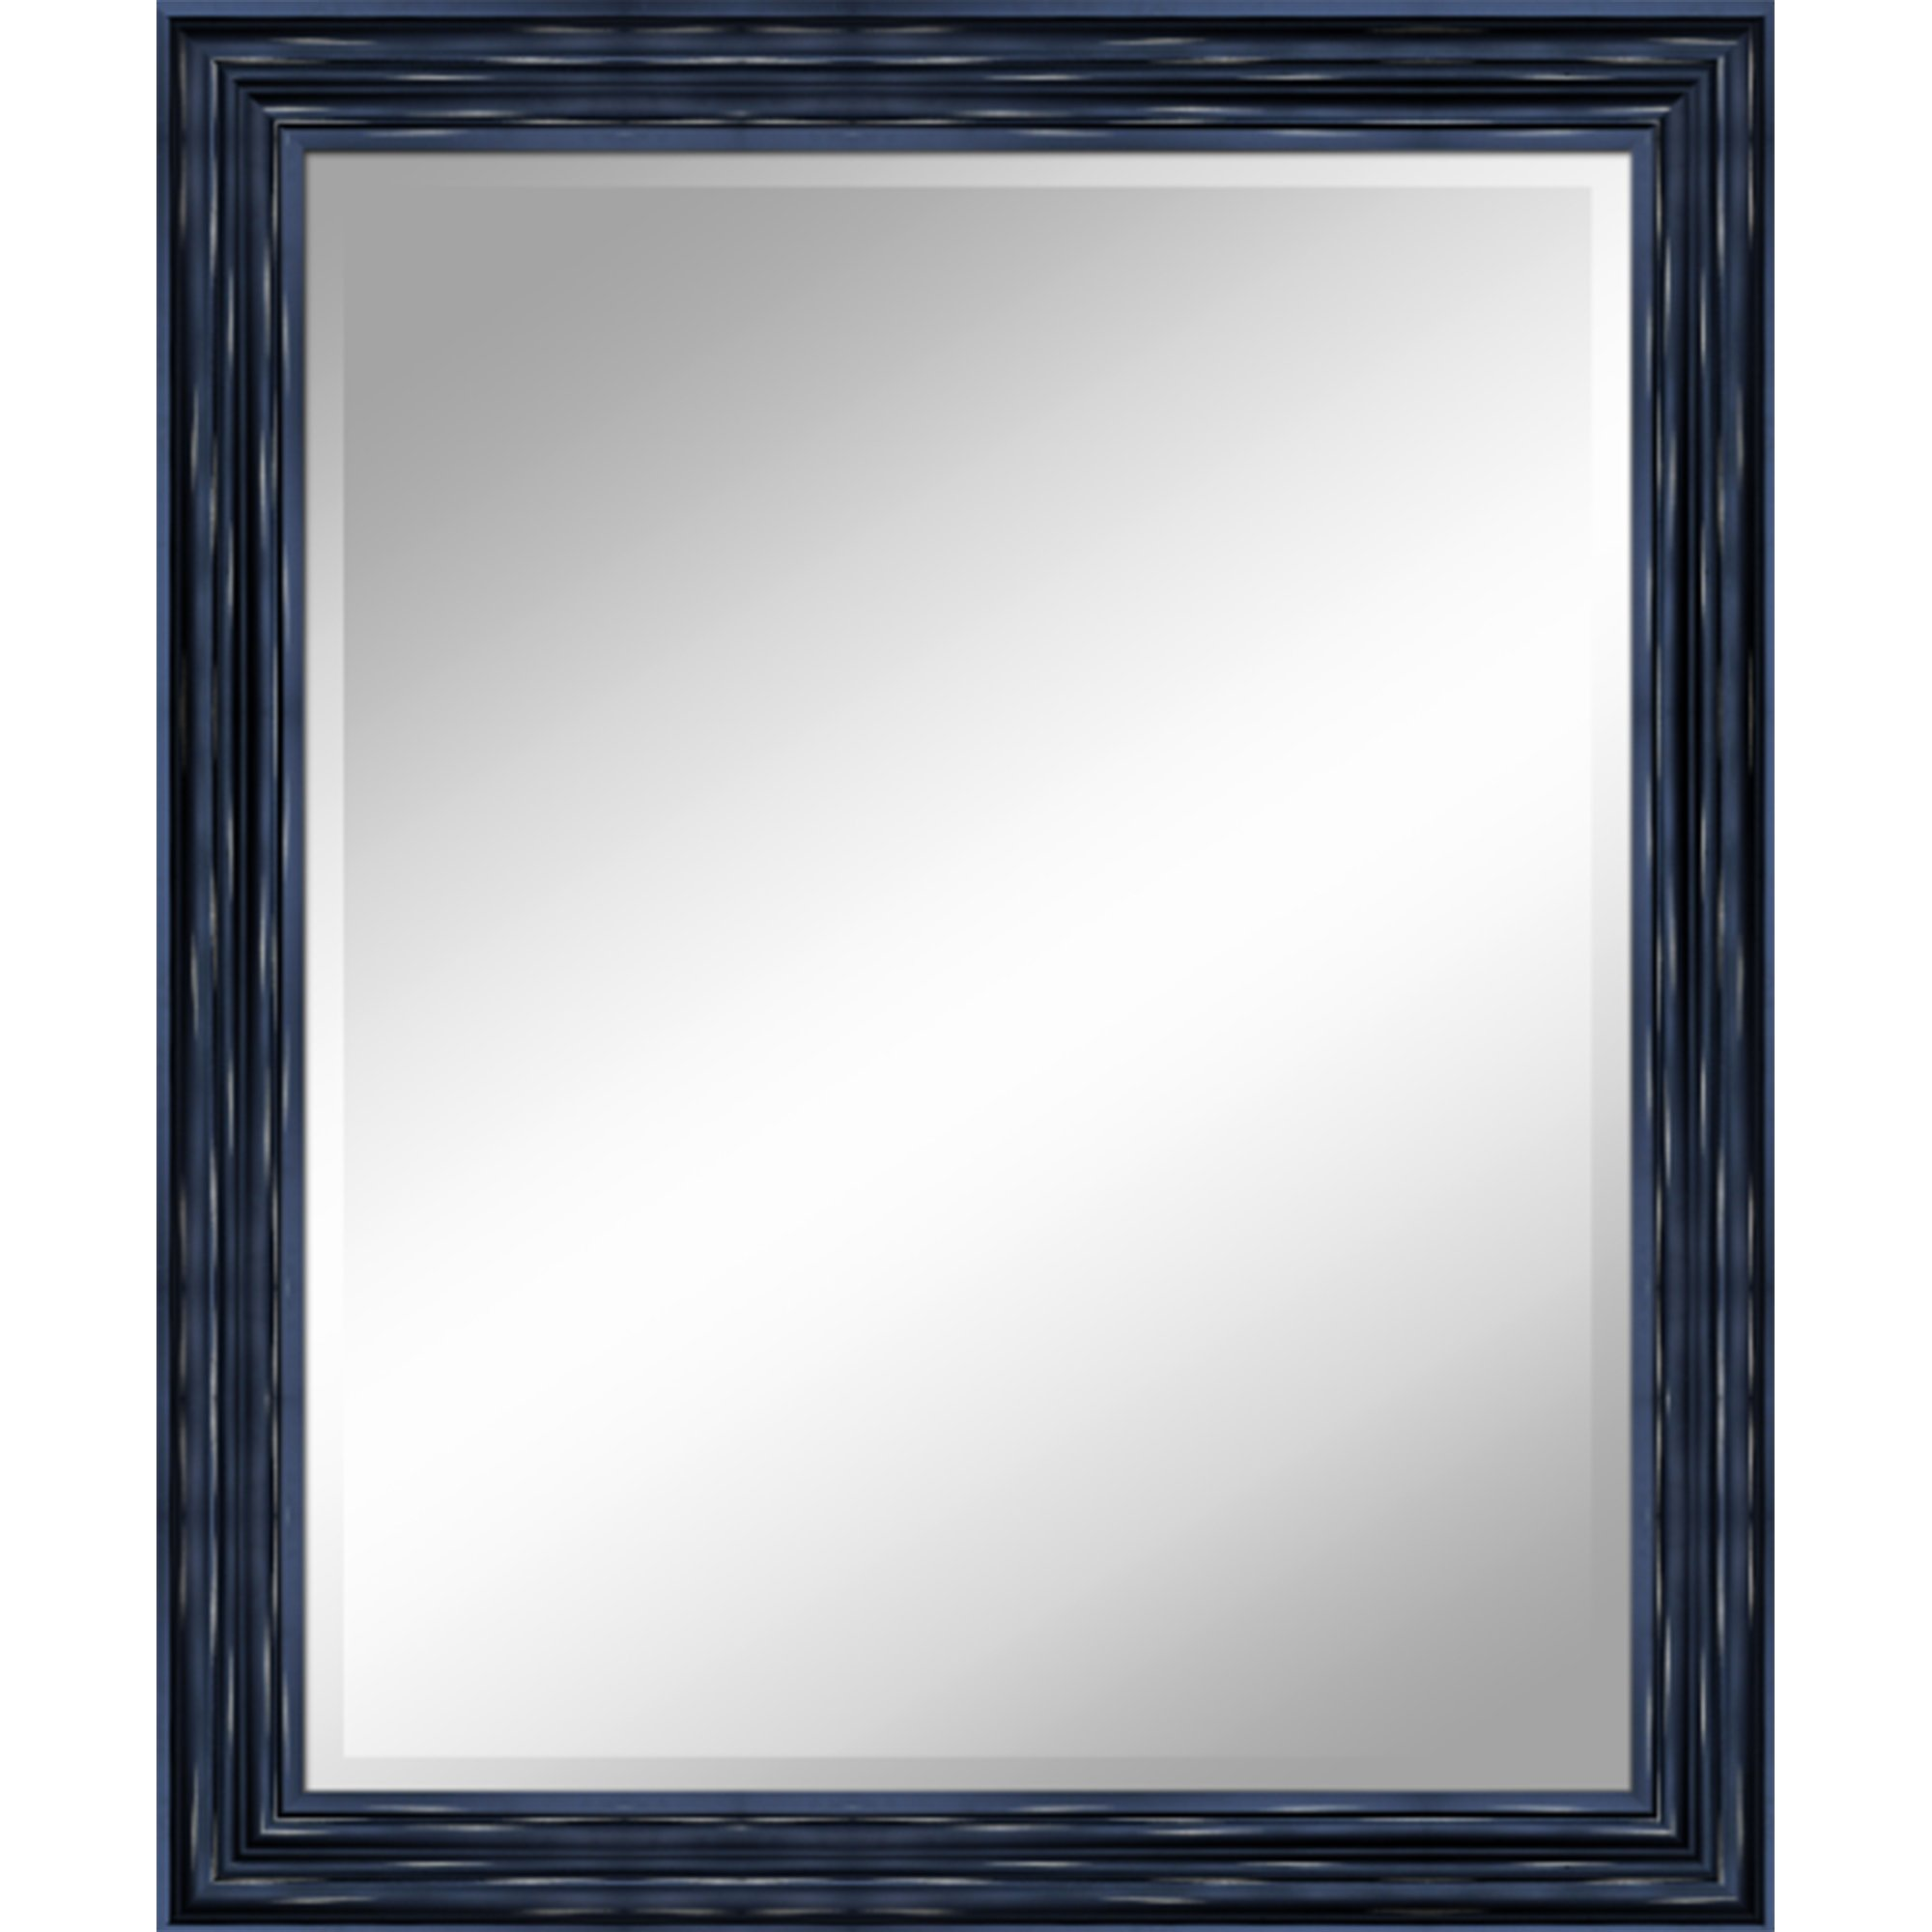 AA Warehousing 31 X 37 Antique Black 1'' Bevel with 3.5'' Frame Accent Mirror, by AA Warehousing